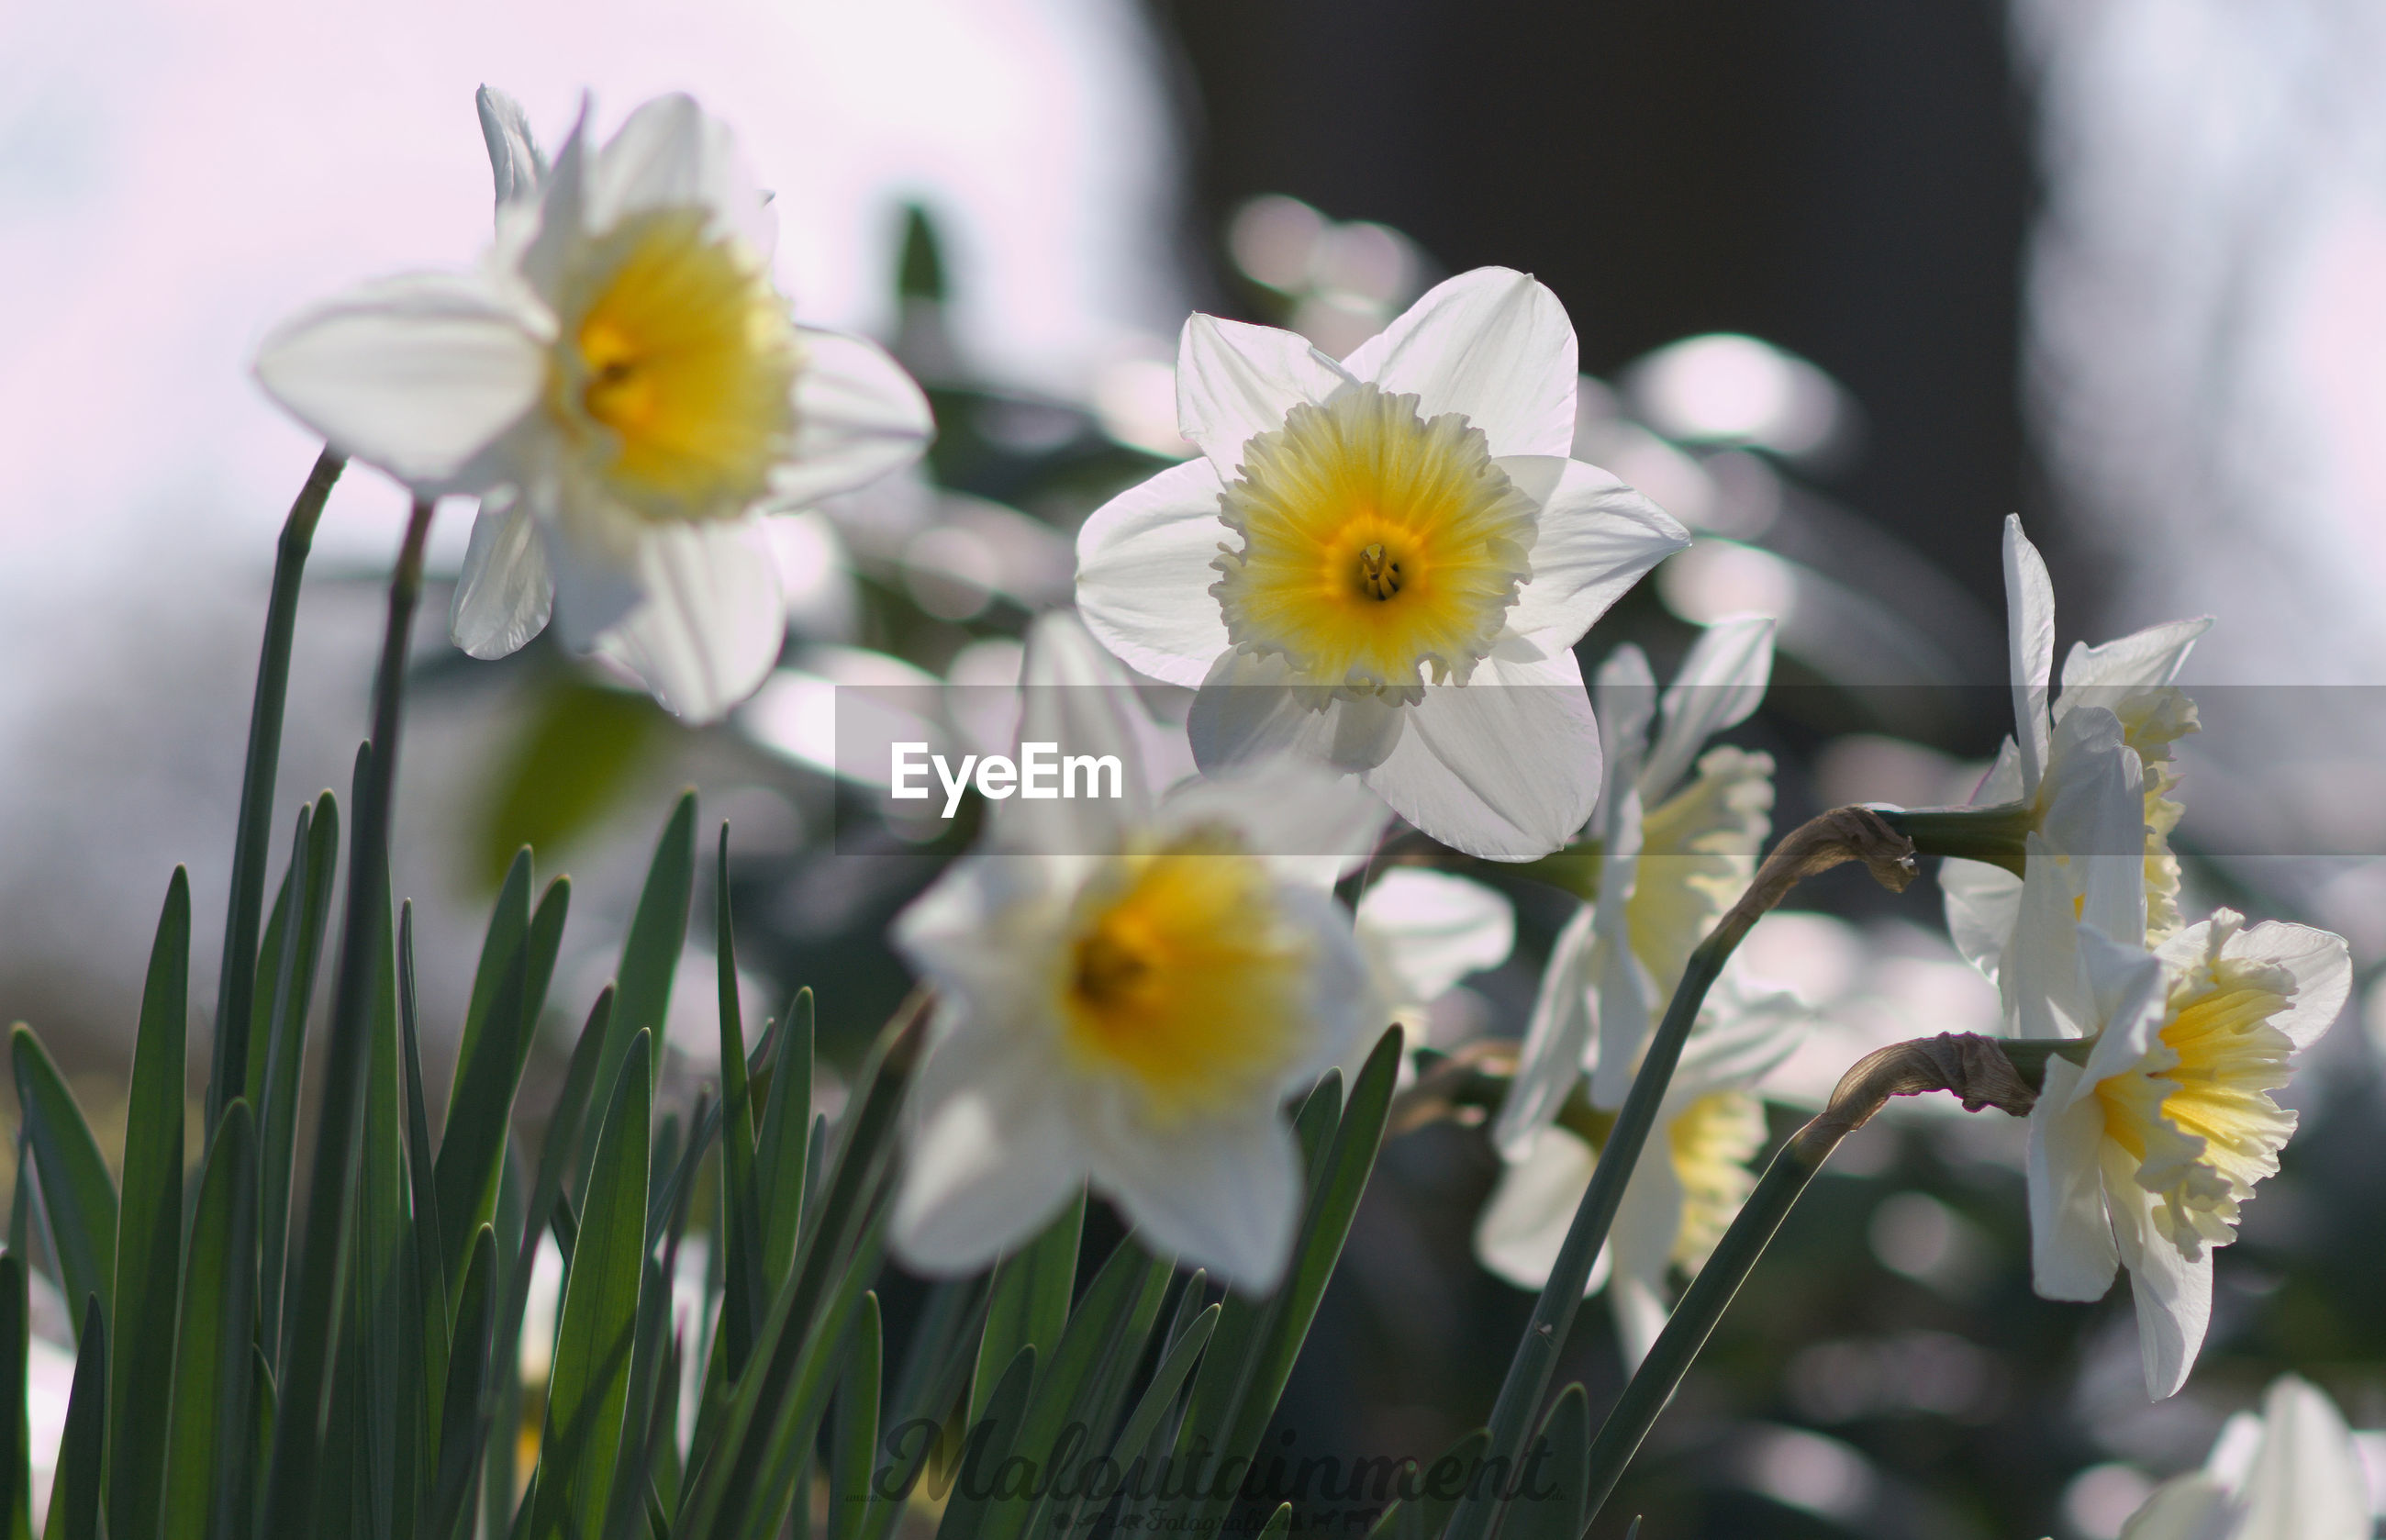 flower, petal, flower head, fragility, white color, nature, freshness, beauty in nature, growth, daffodil, no people, blooming, day, plant, yellow, close-up, outdoors